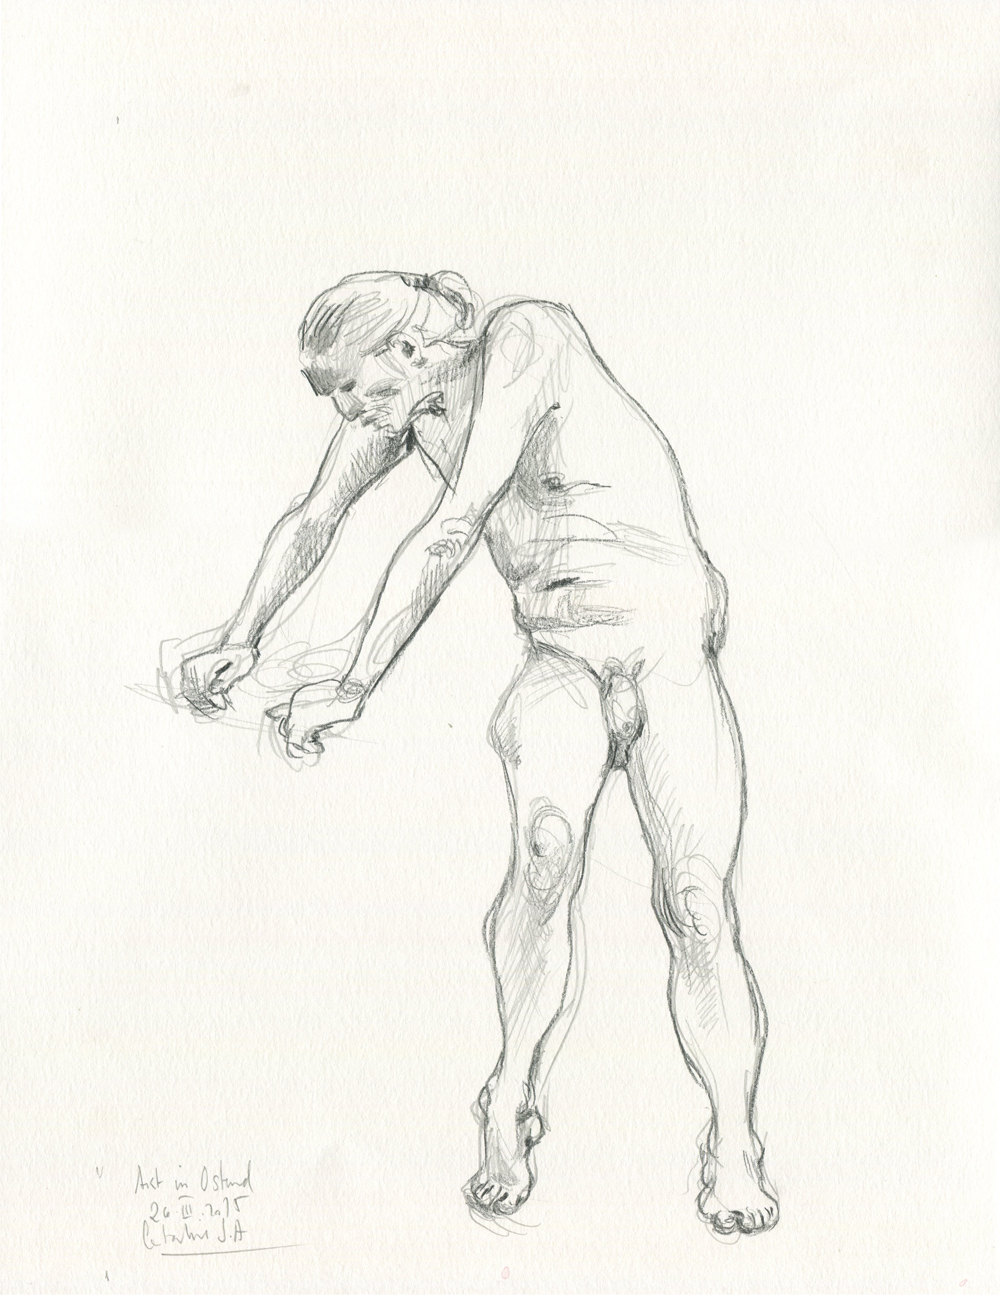 1000x1296 Male Nudity 5 Original Pencil Drawing Male Nude Man Art